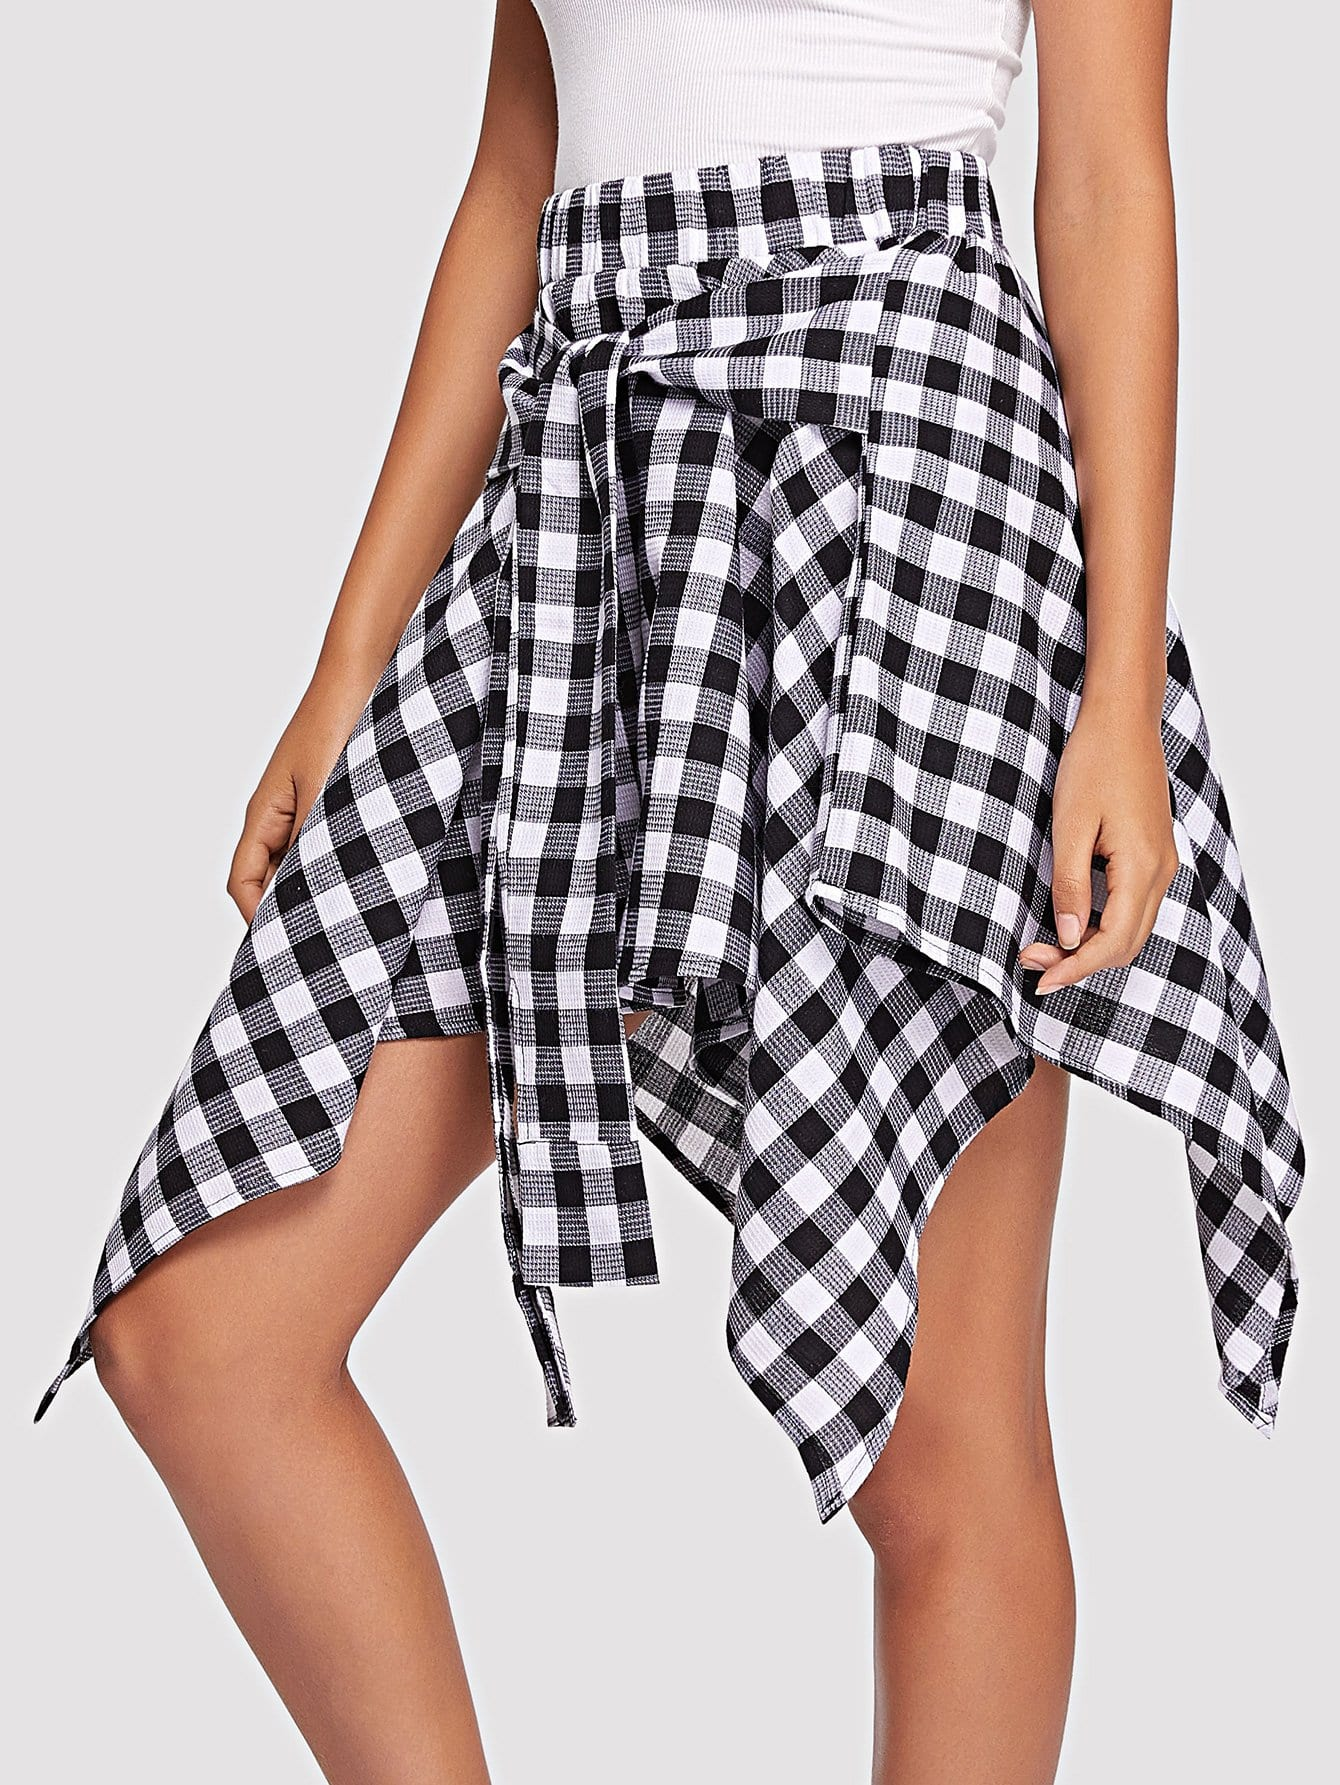 Knot Front Gingham Hanky Hem Skirt knot front gingham top